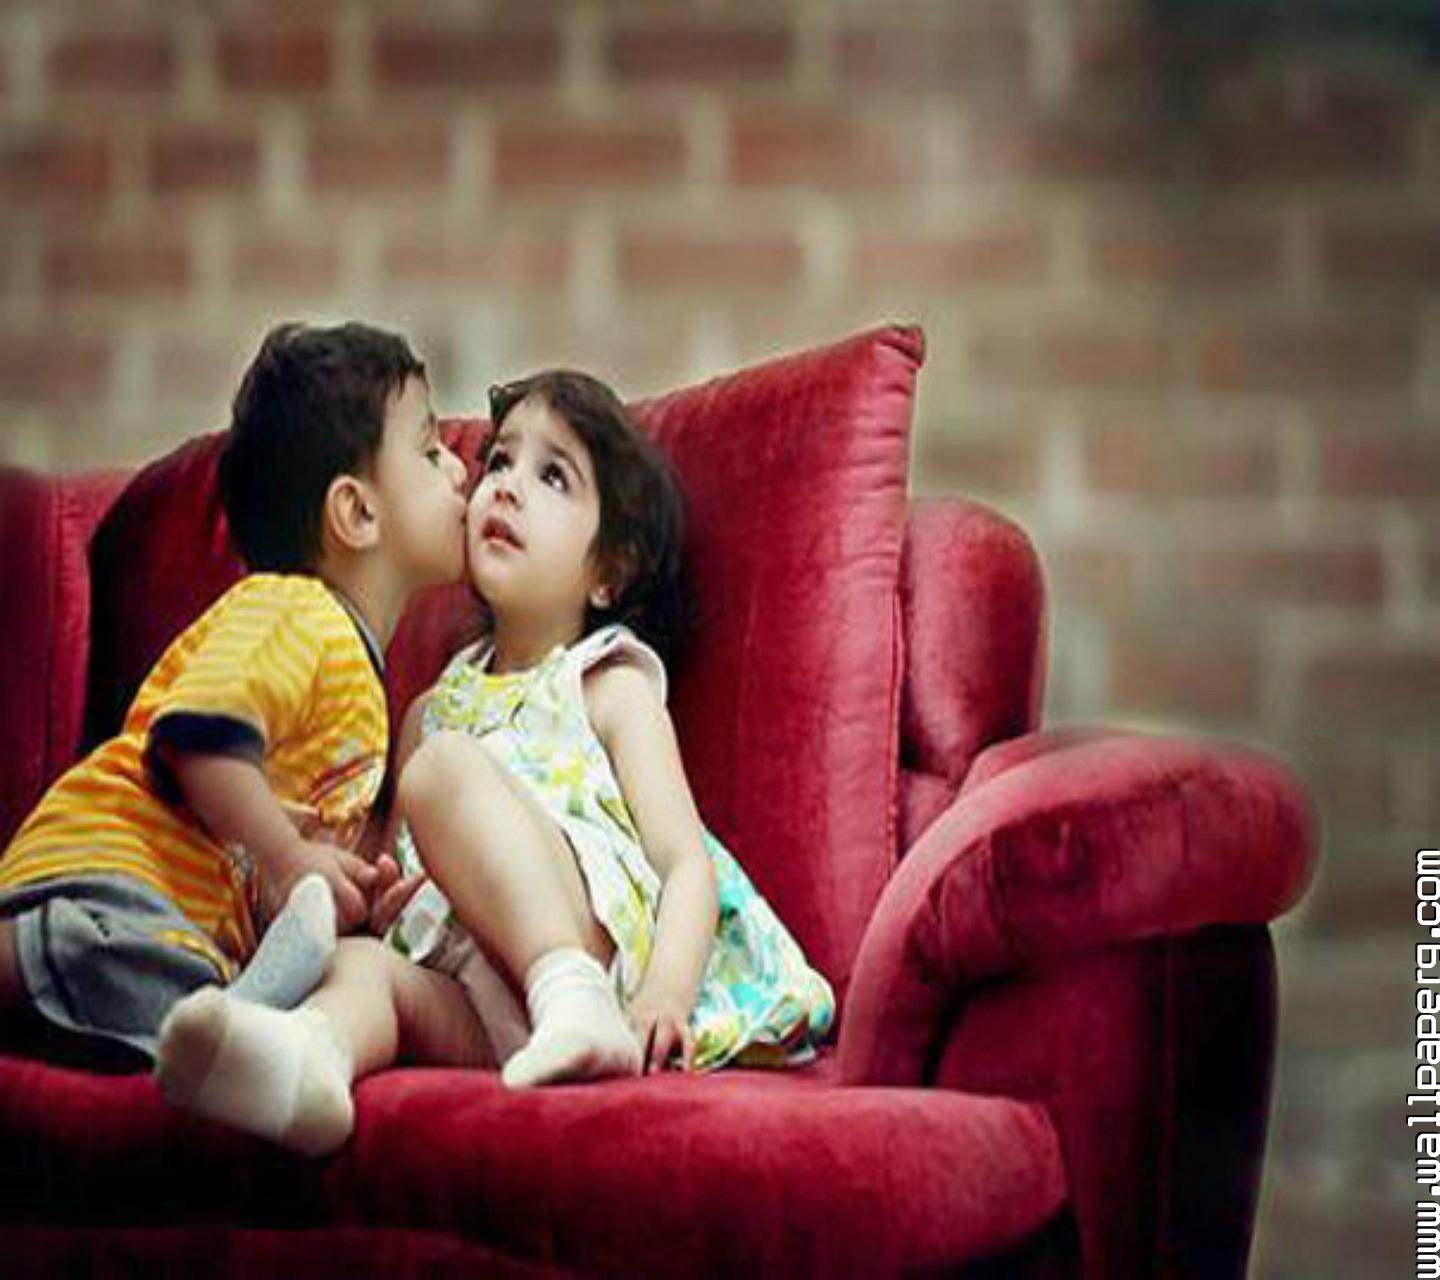 cute Love Baby Wallpaper Hd : Download Love kiss hd wall - cute baby profile pics for your mobile cell phone